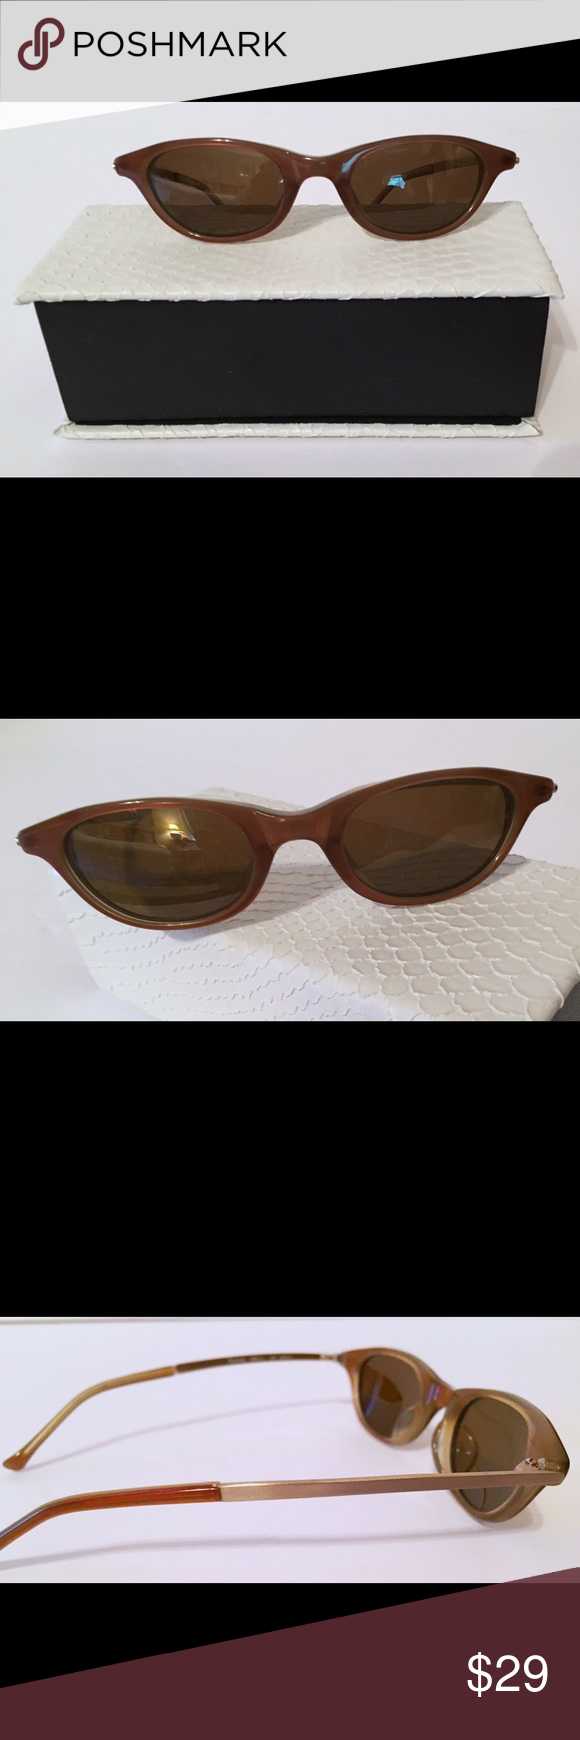 948464acb6 Authentic vintage Oscar de la RENTA sunglasses Vintage Oscar sunglasses  slight cat eye shape. Brown